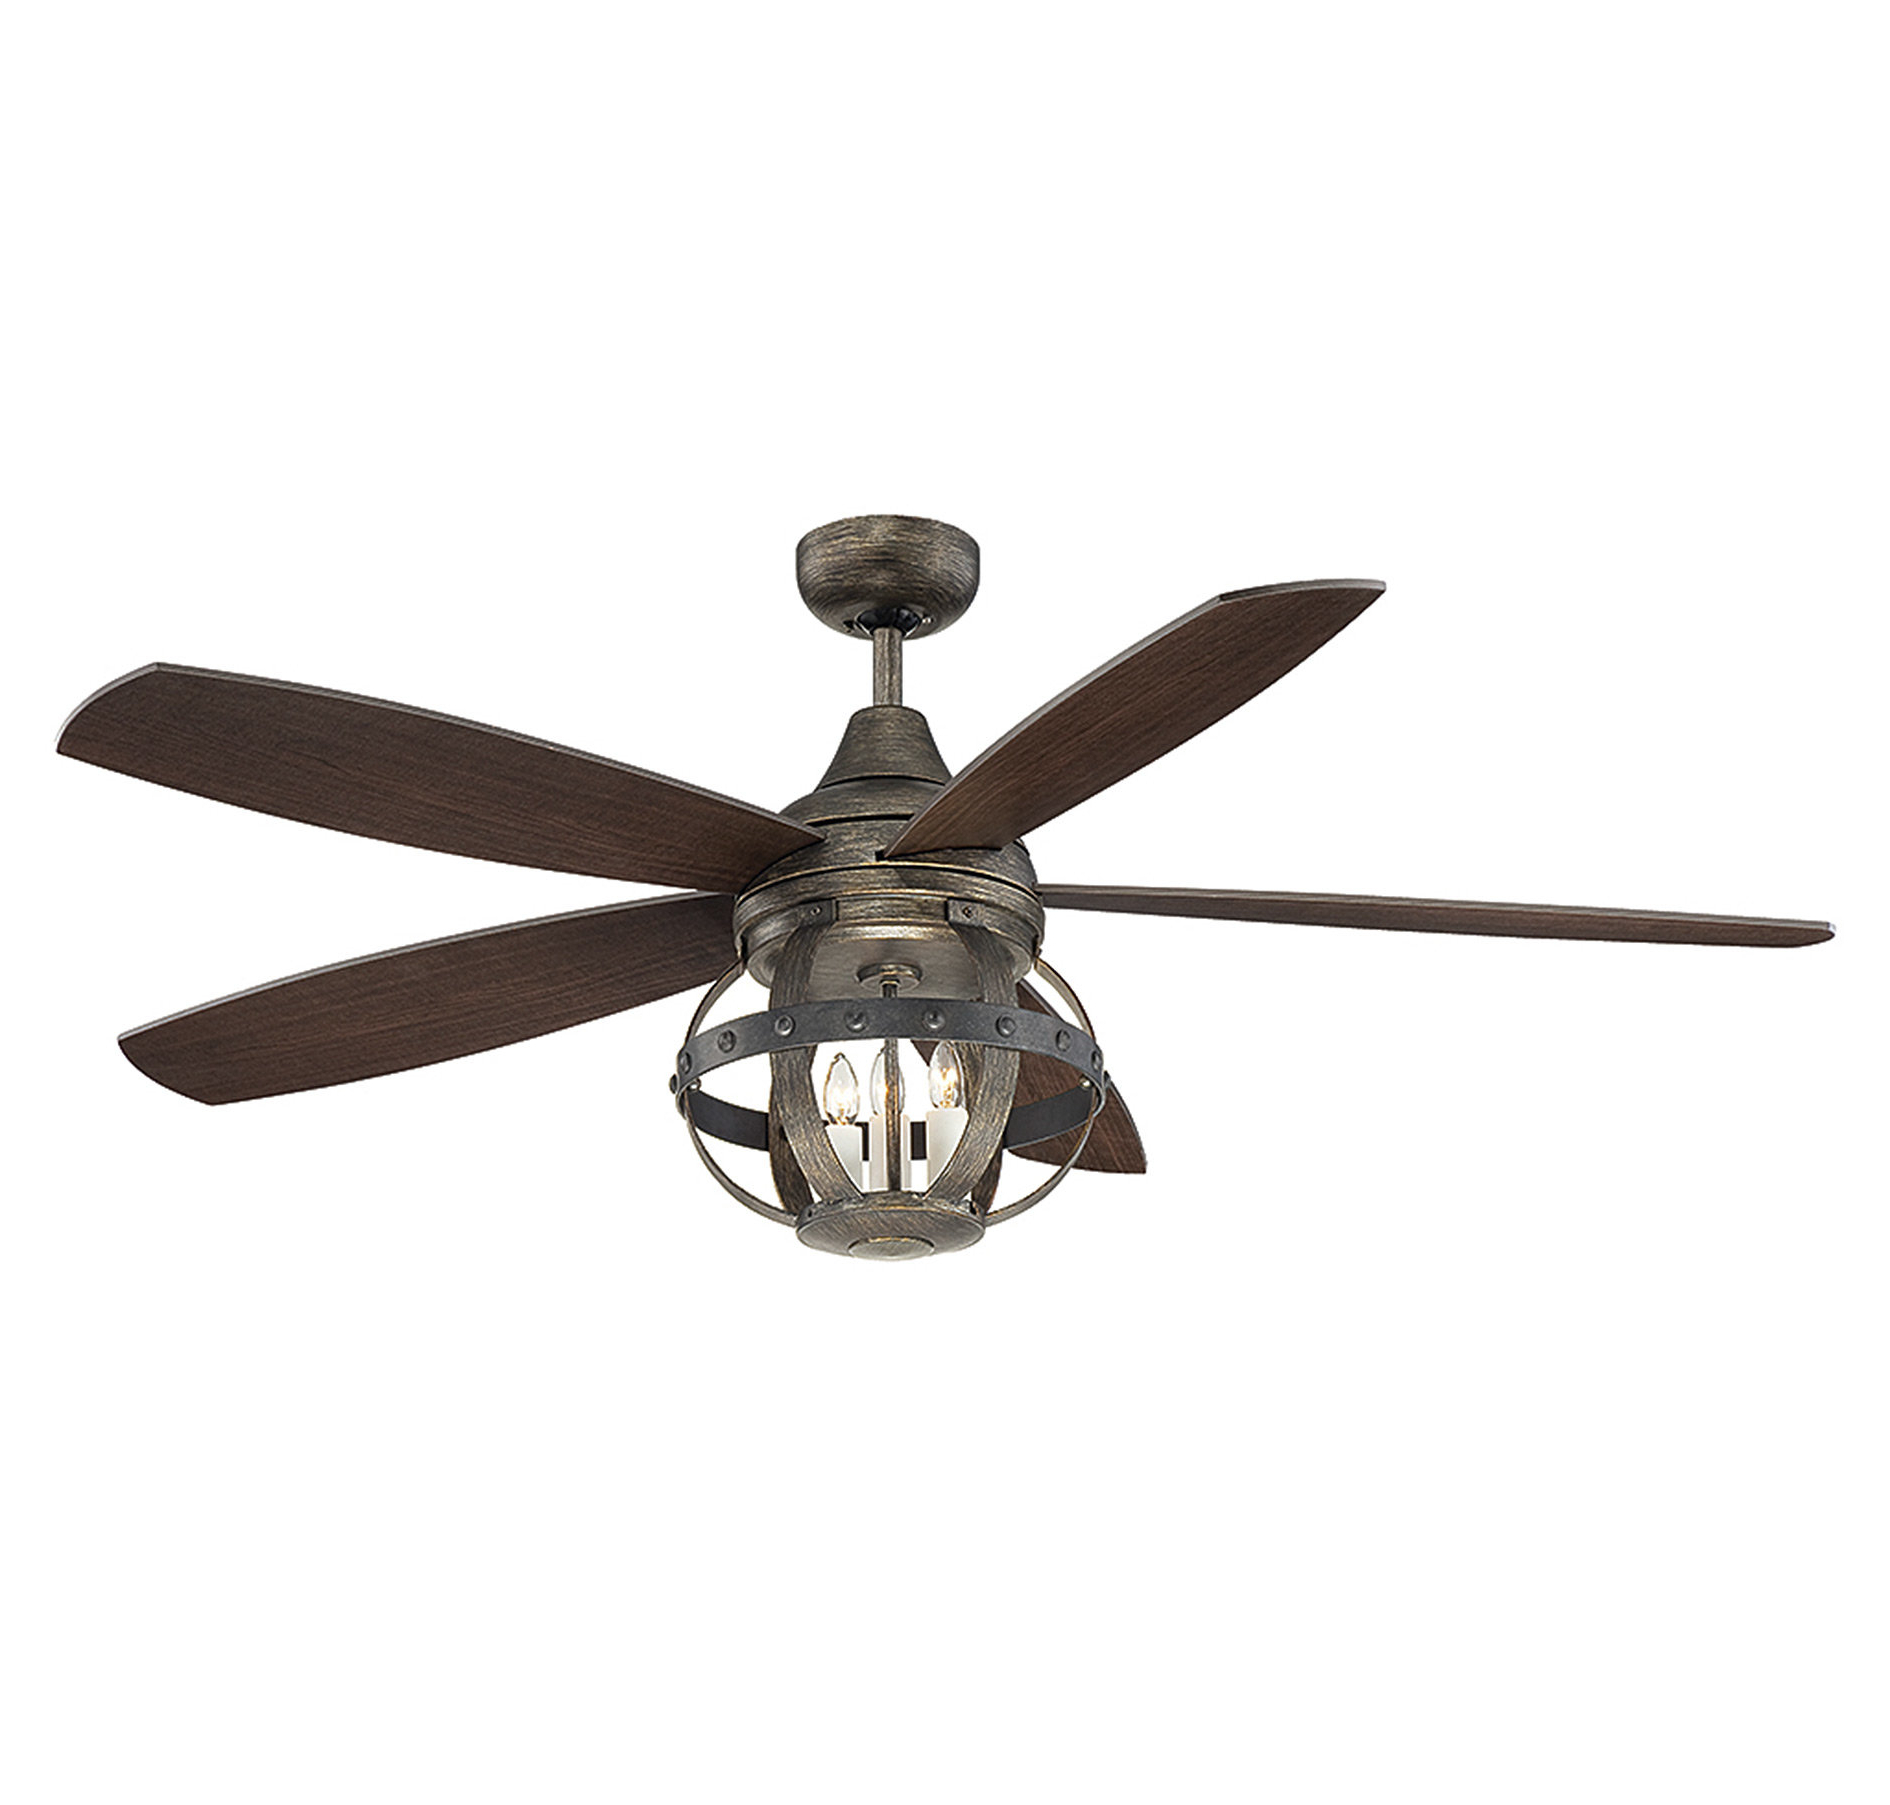 """Marcoux 5 Blade Ceiling Fans Intended For 2019 52"""" Wilburton 5 Blade Ceiling Fan With Remote, Light Kit Included (View 2 of 20)"""